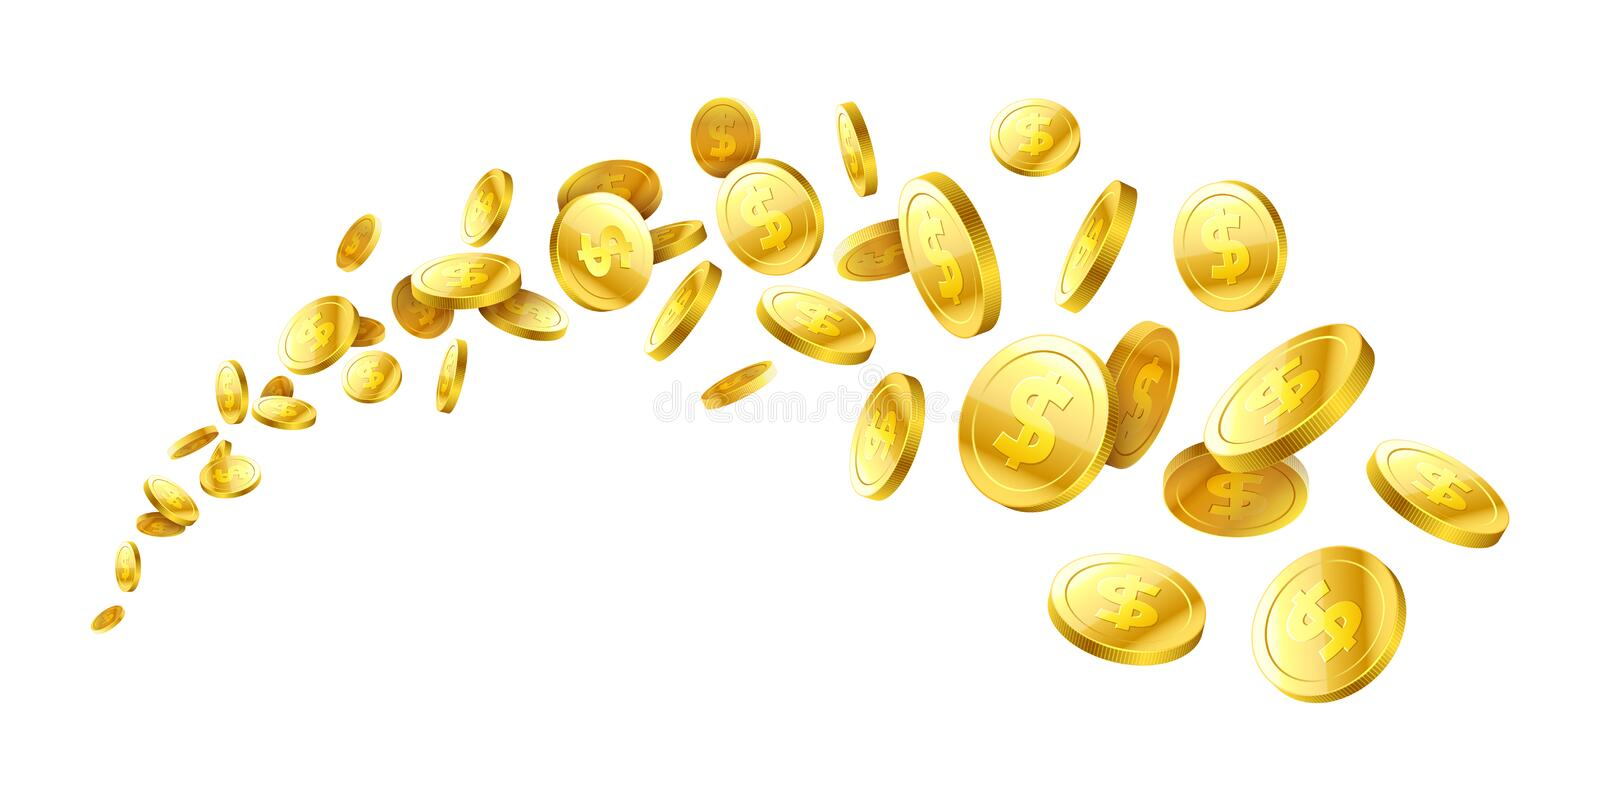 Flying realistic gold 3d coins stock illustration